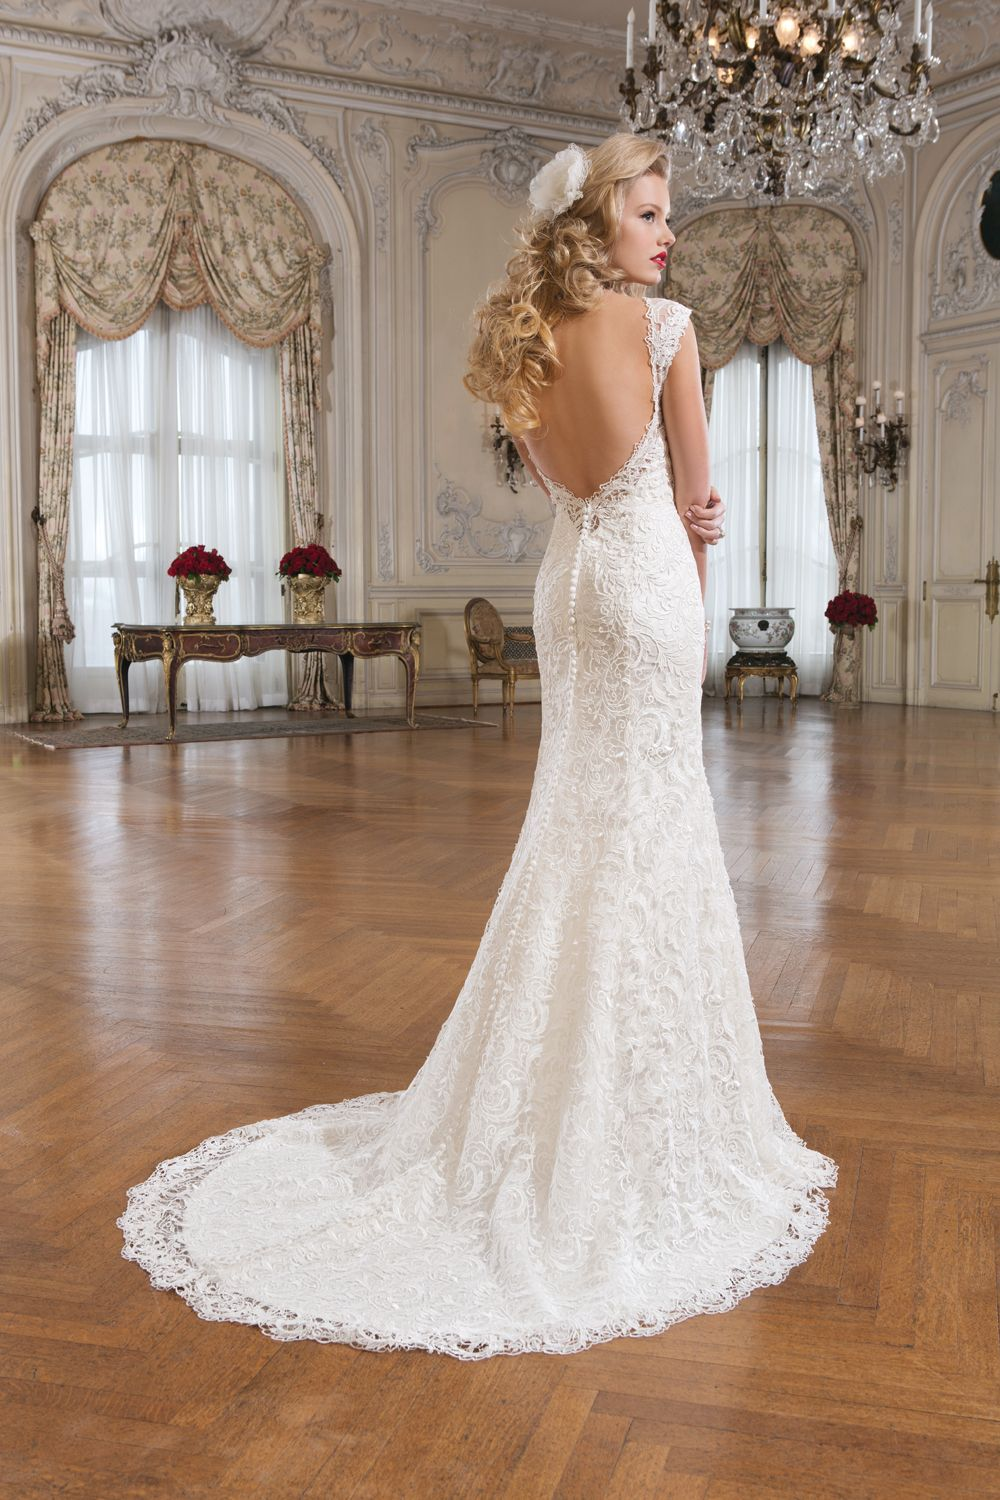 Low Back Wedding Dress Fit And Flare : New in quot clara by justin alexander venice lace